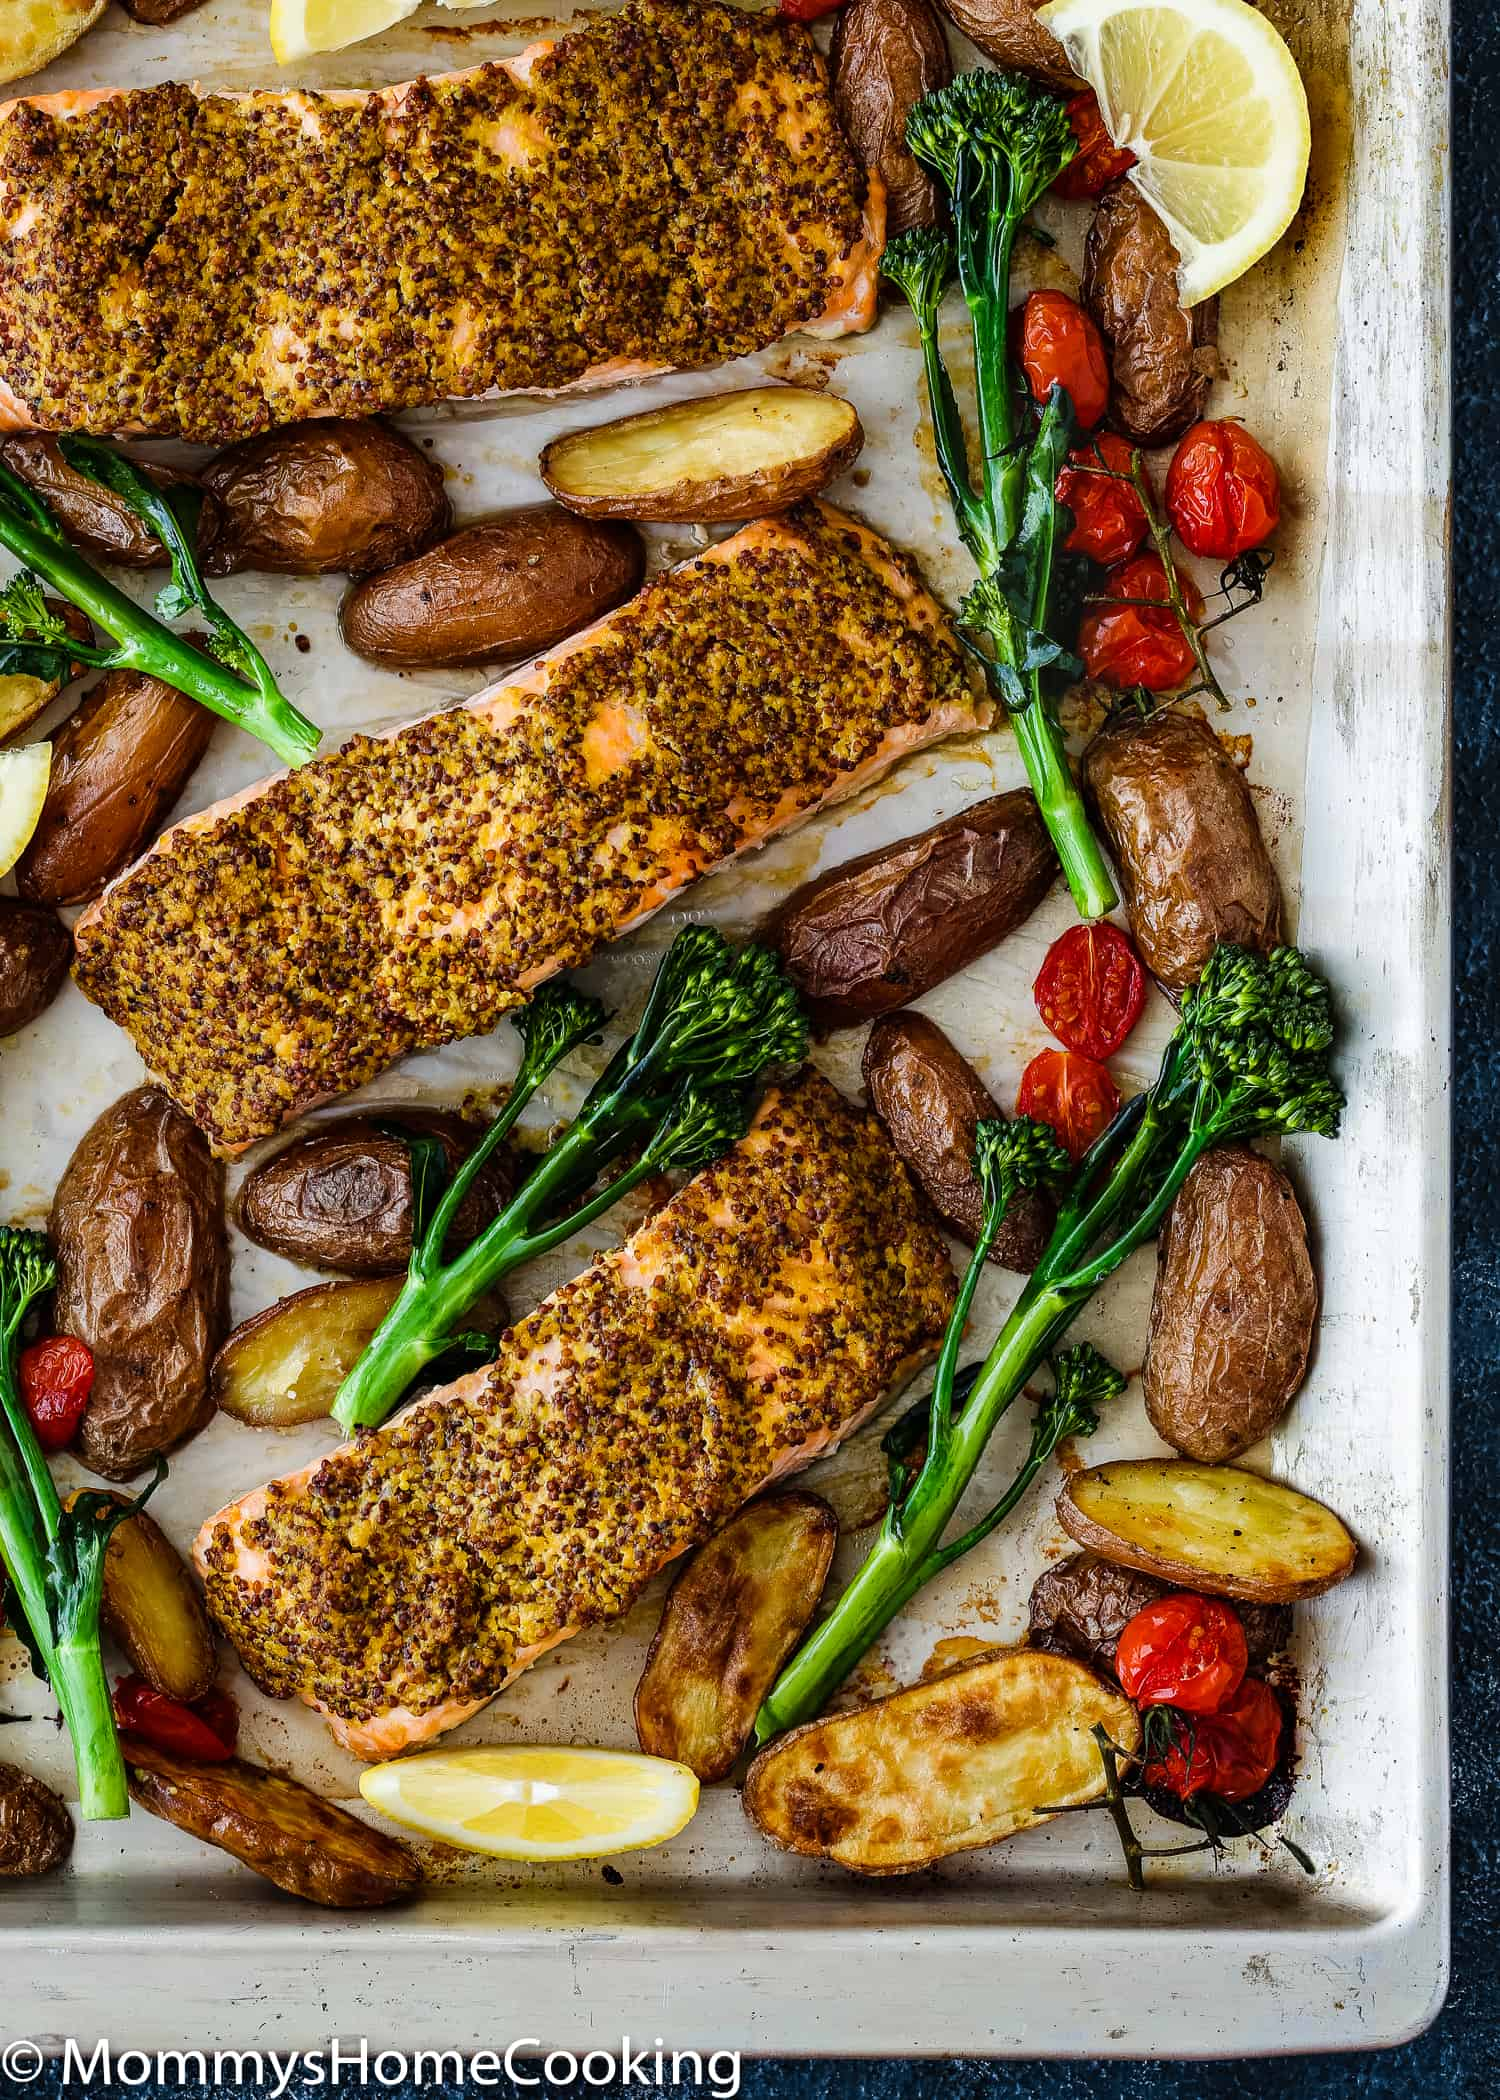 Sheet Pan with Salmon Filets, roasted potatoes, tomatoes.